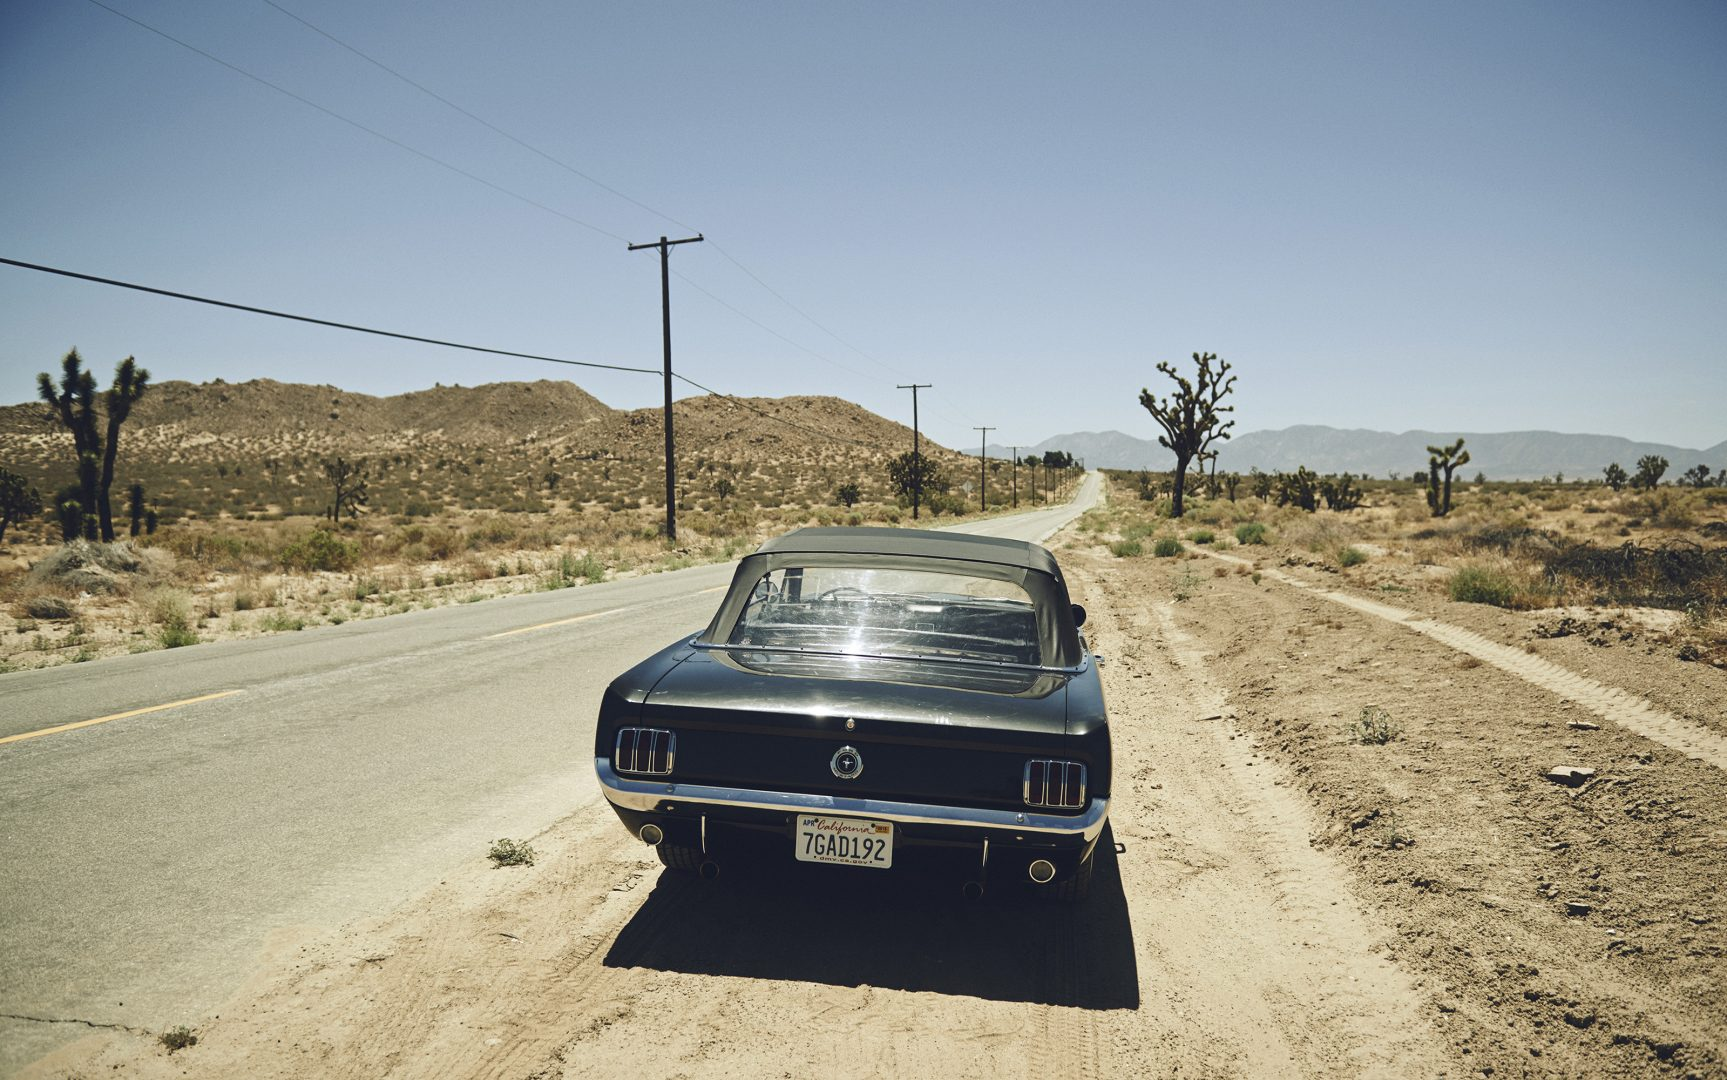 Ford Mustang parked in the desert by Stefan Rappo